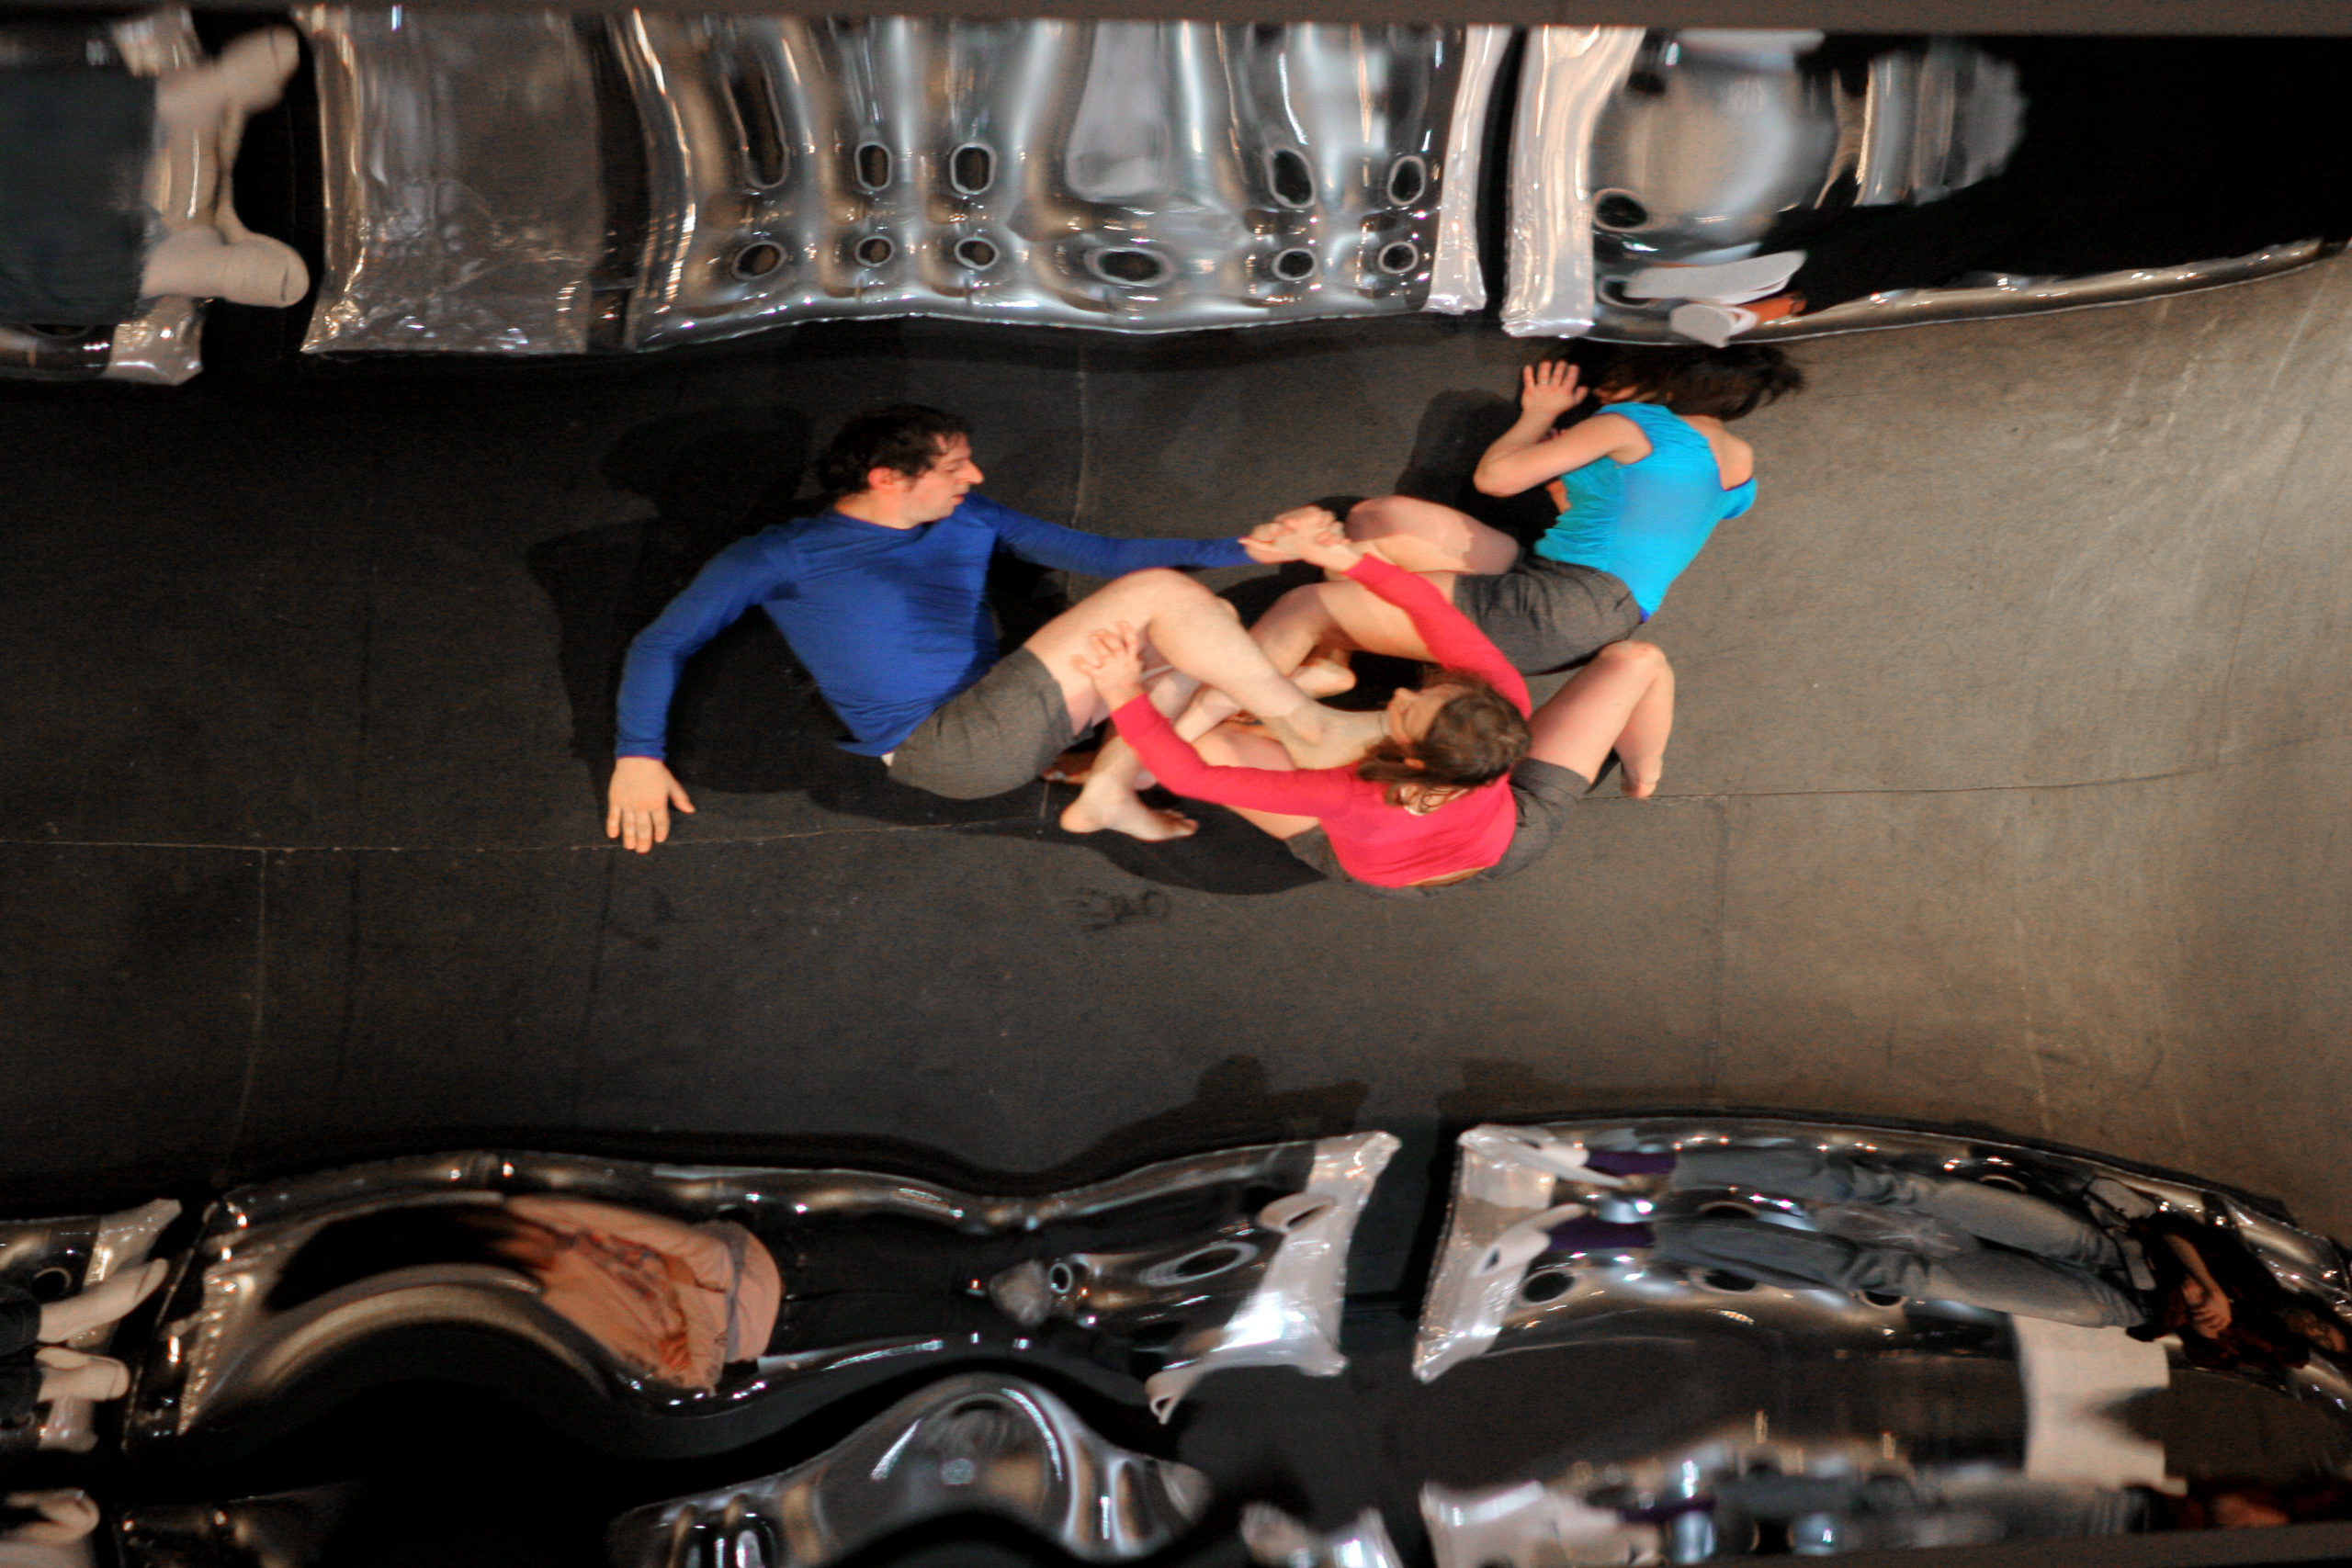 Distorted reflection of three dancers on the ground, limbs intertwined from a birds eye view